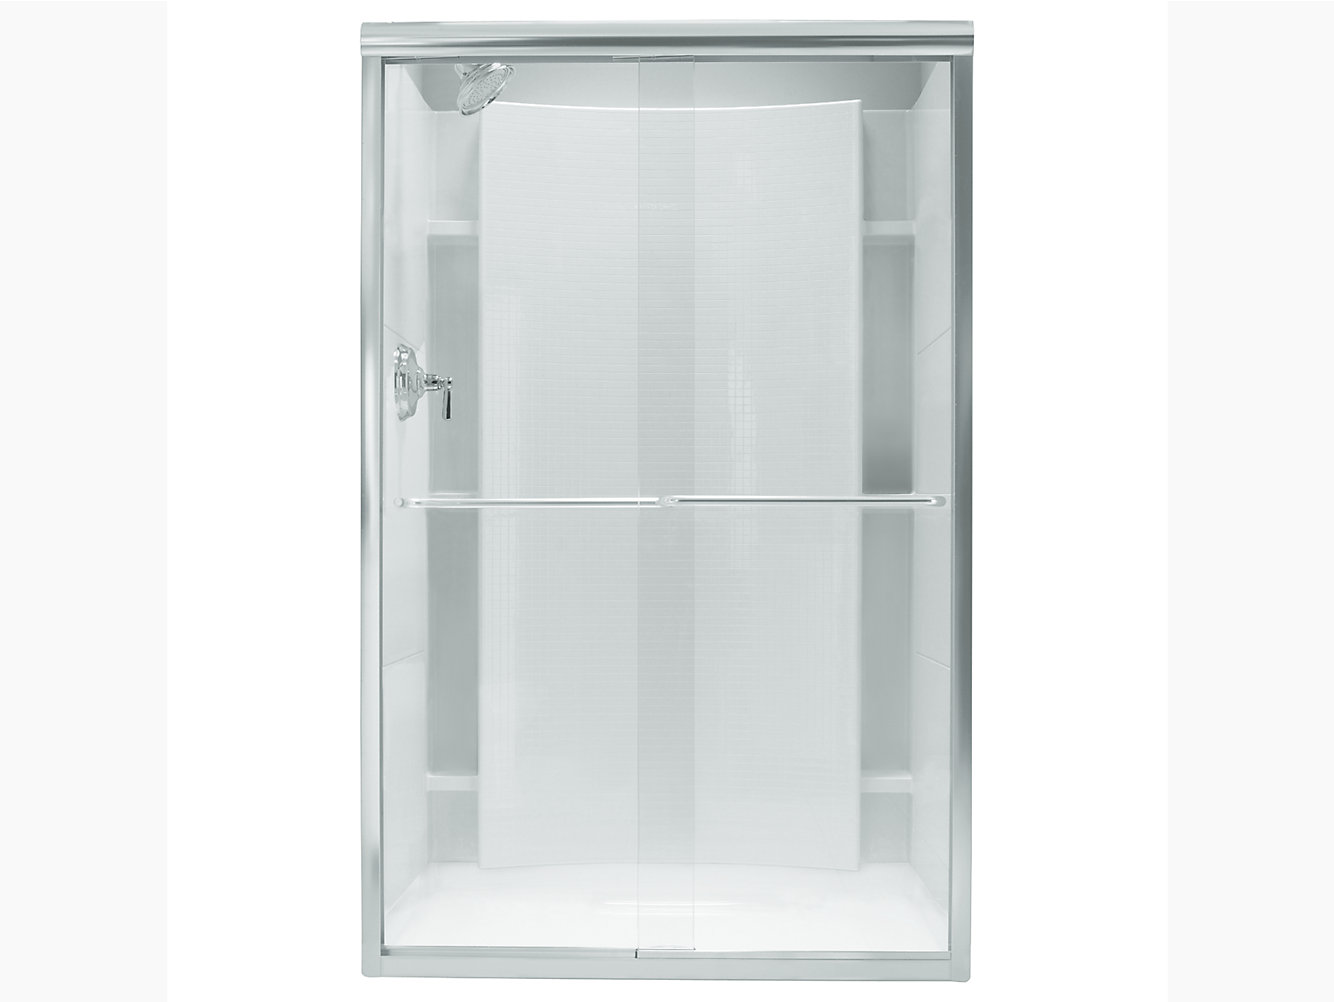 Finesse Frameless Sliding Shower Door 45 3848 W X 65 12 H